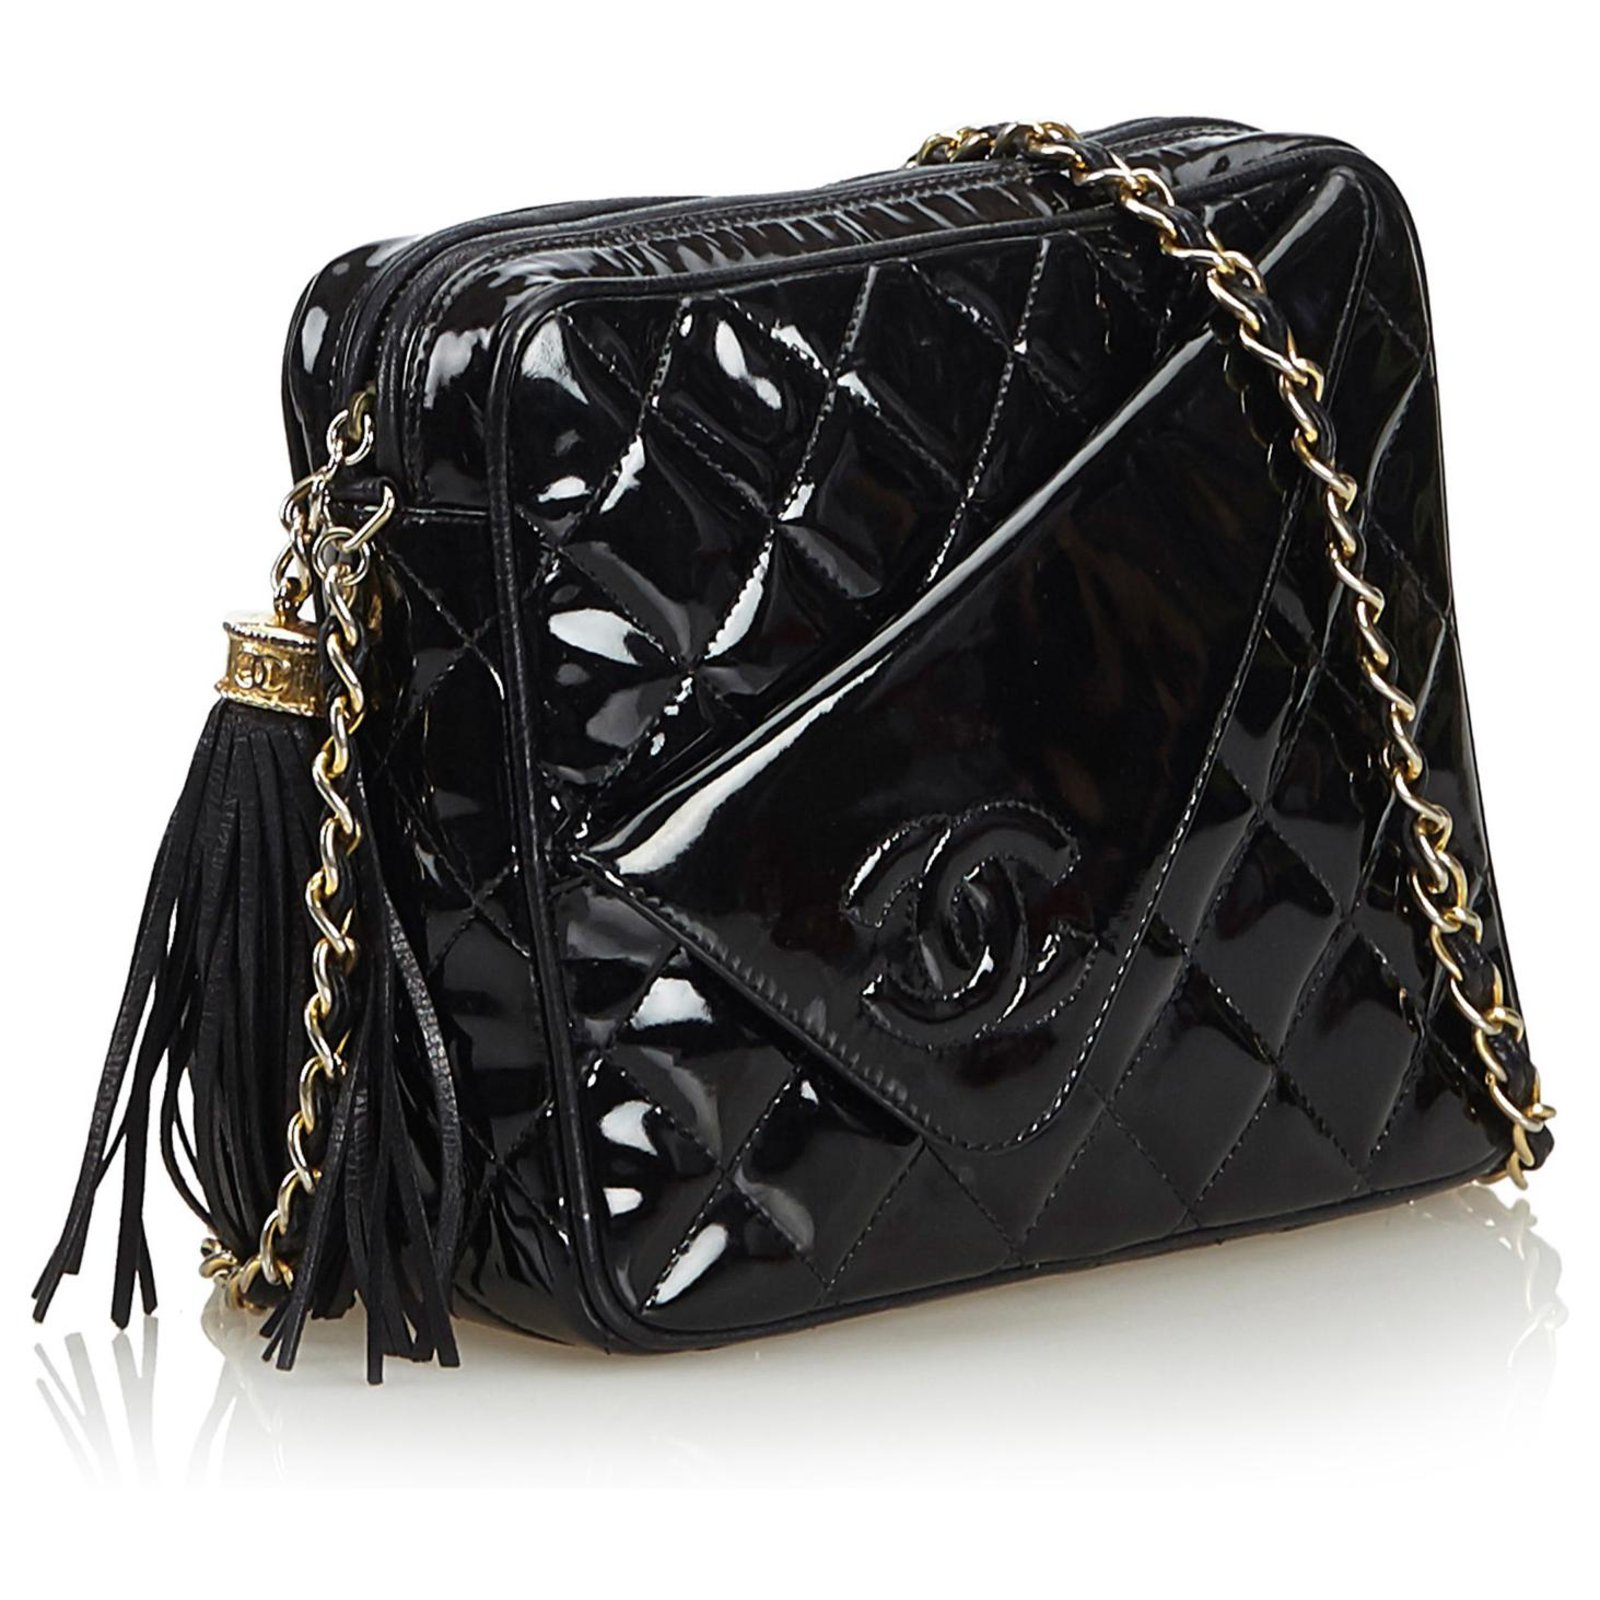 61af8e48aed3 Chanel Chanel Black Patent Leather Quilted Chain Camera Bag Handbags Leather ,Patent leather Black ref.122919 - Joli Closet